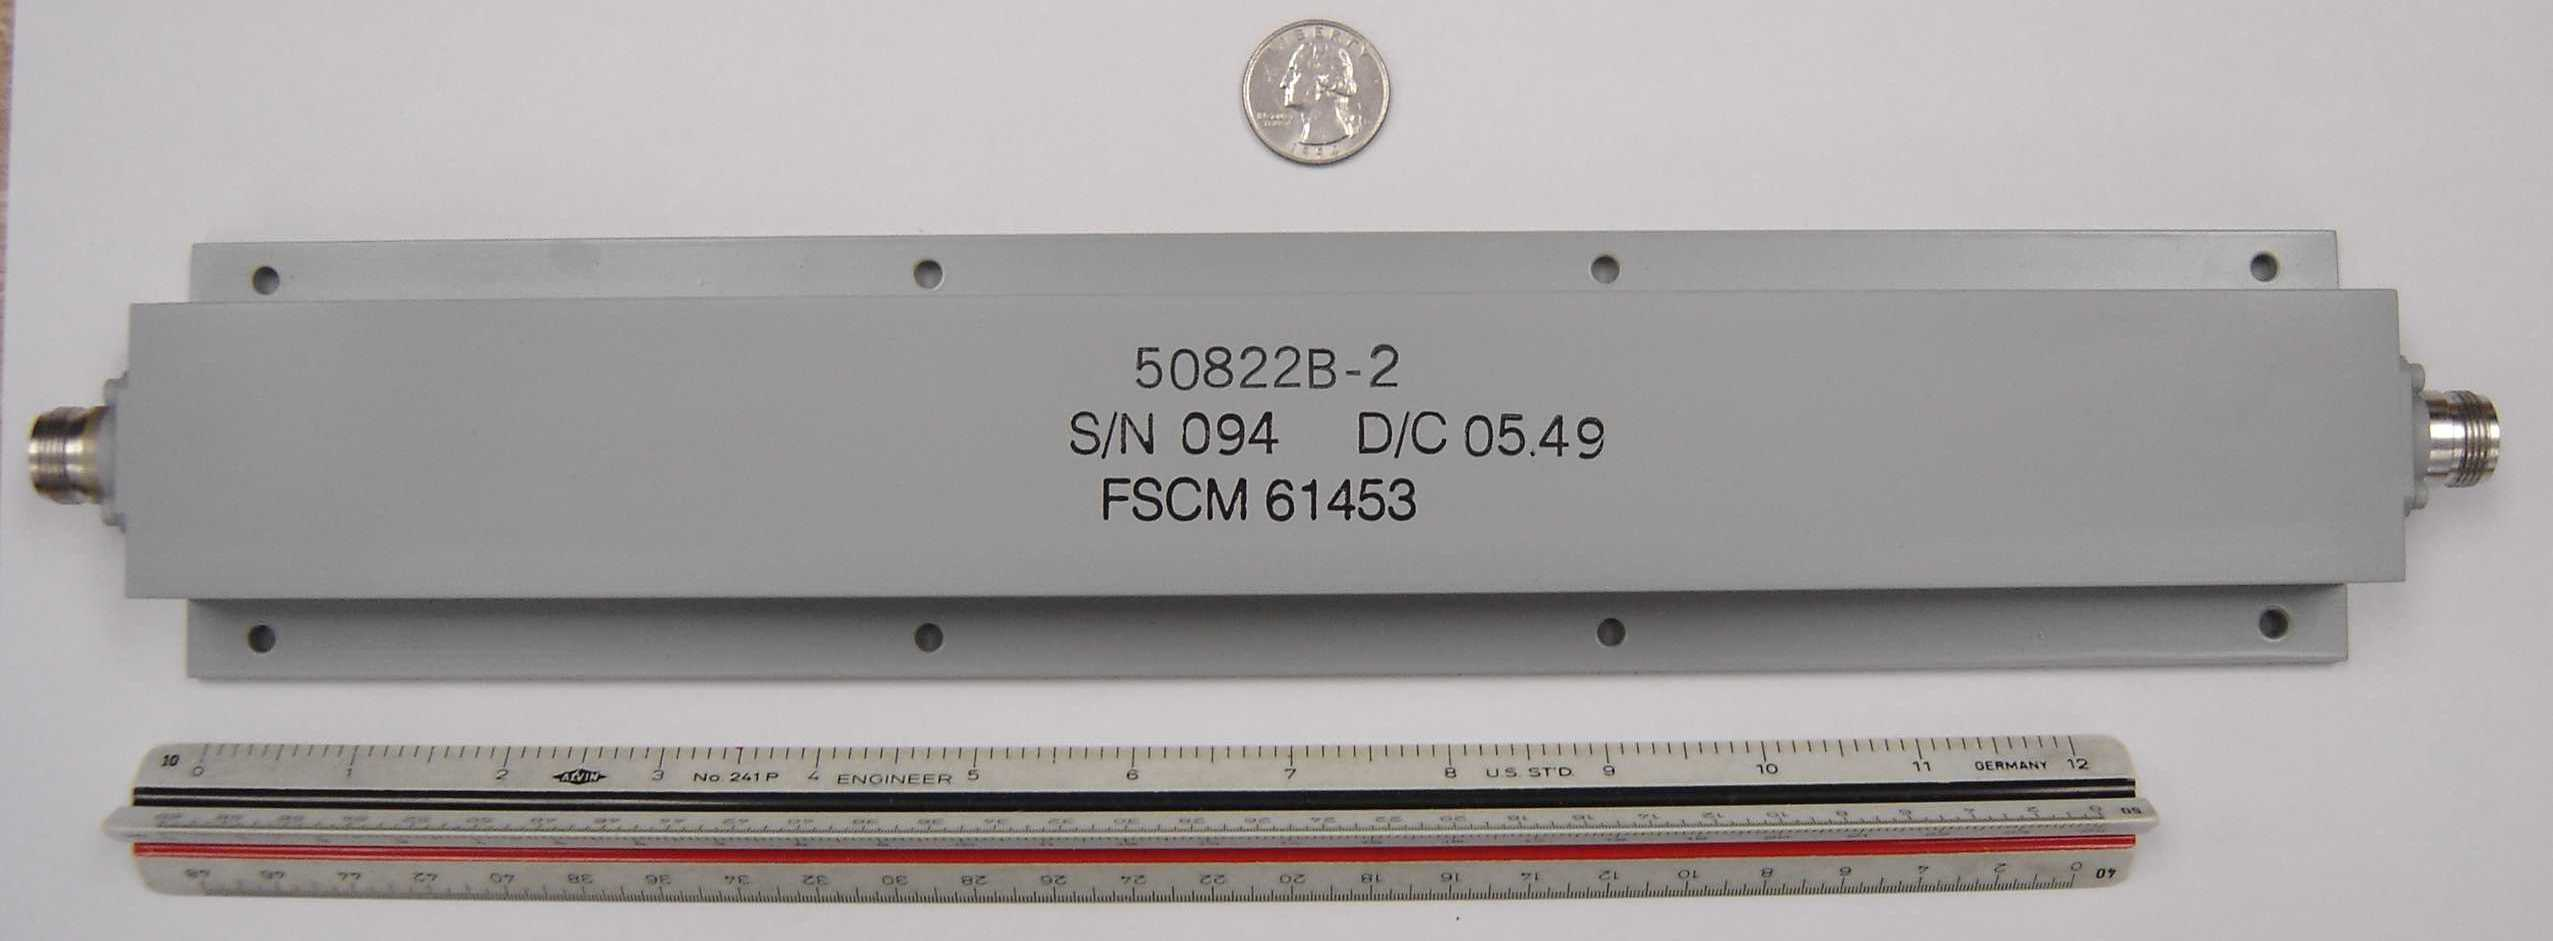 PN 50822B-2 Radar Band Rejection Filter